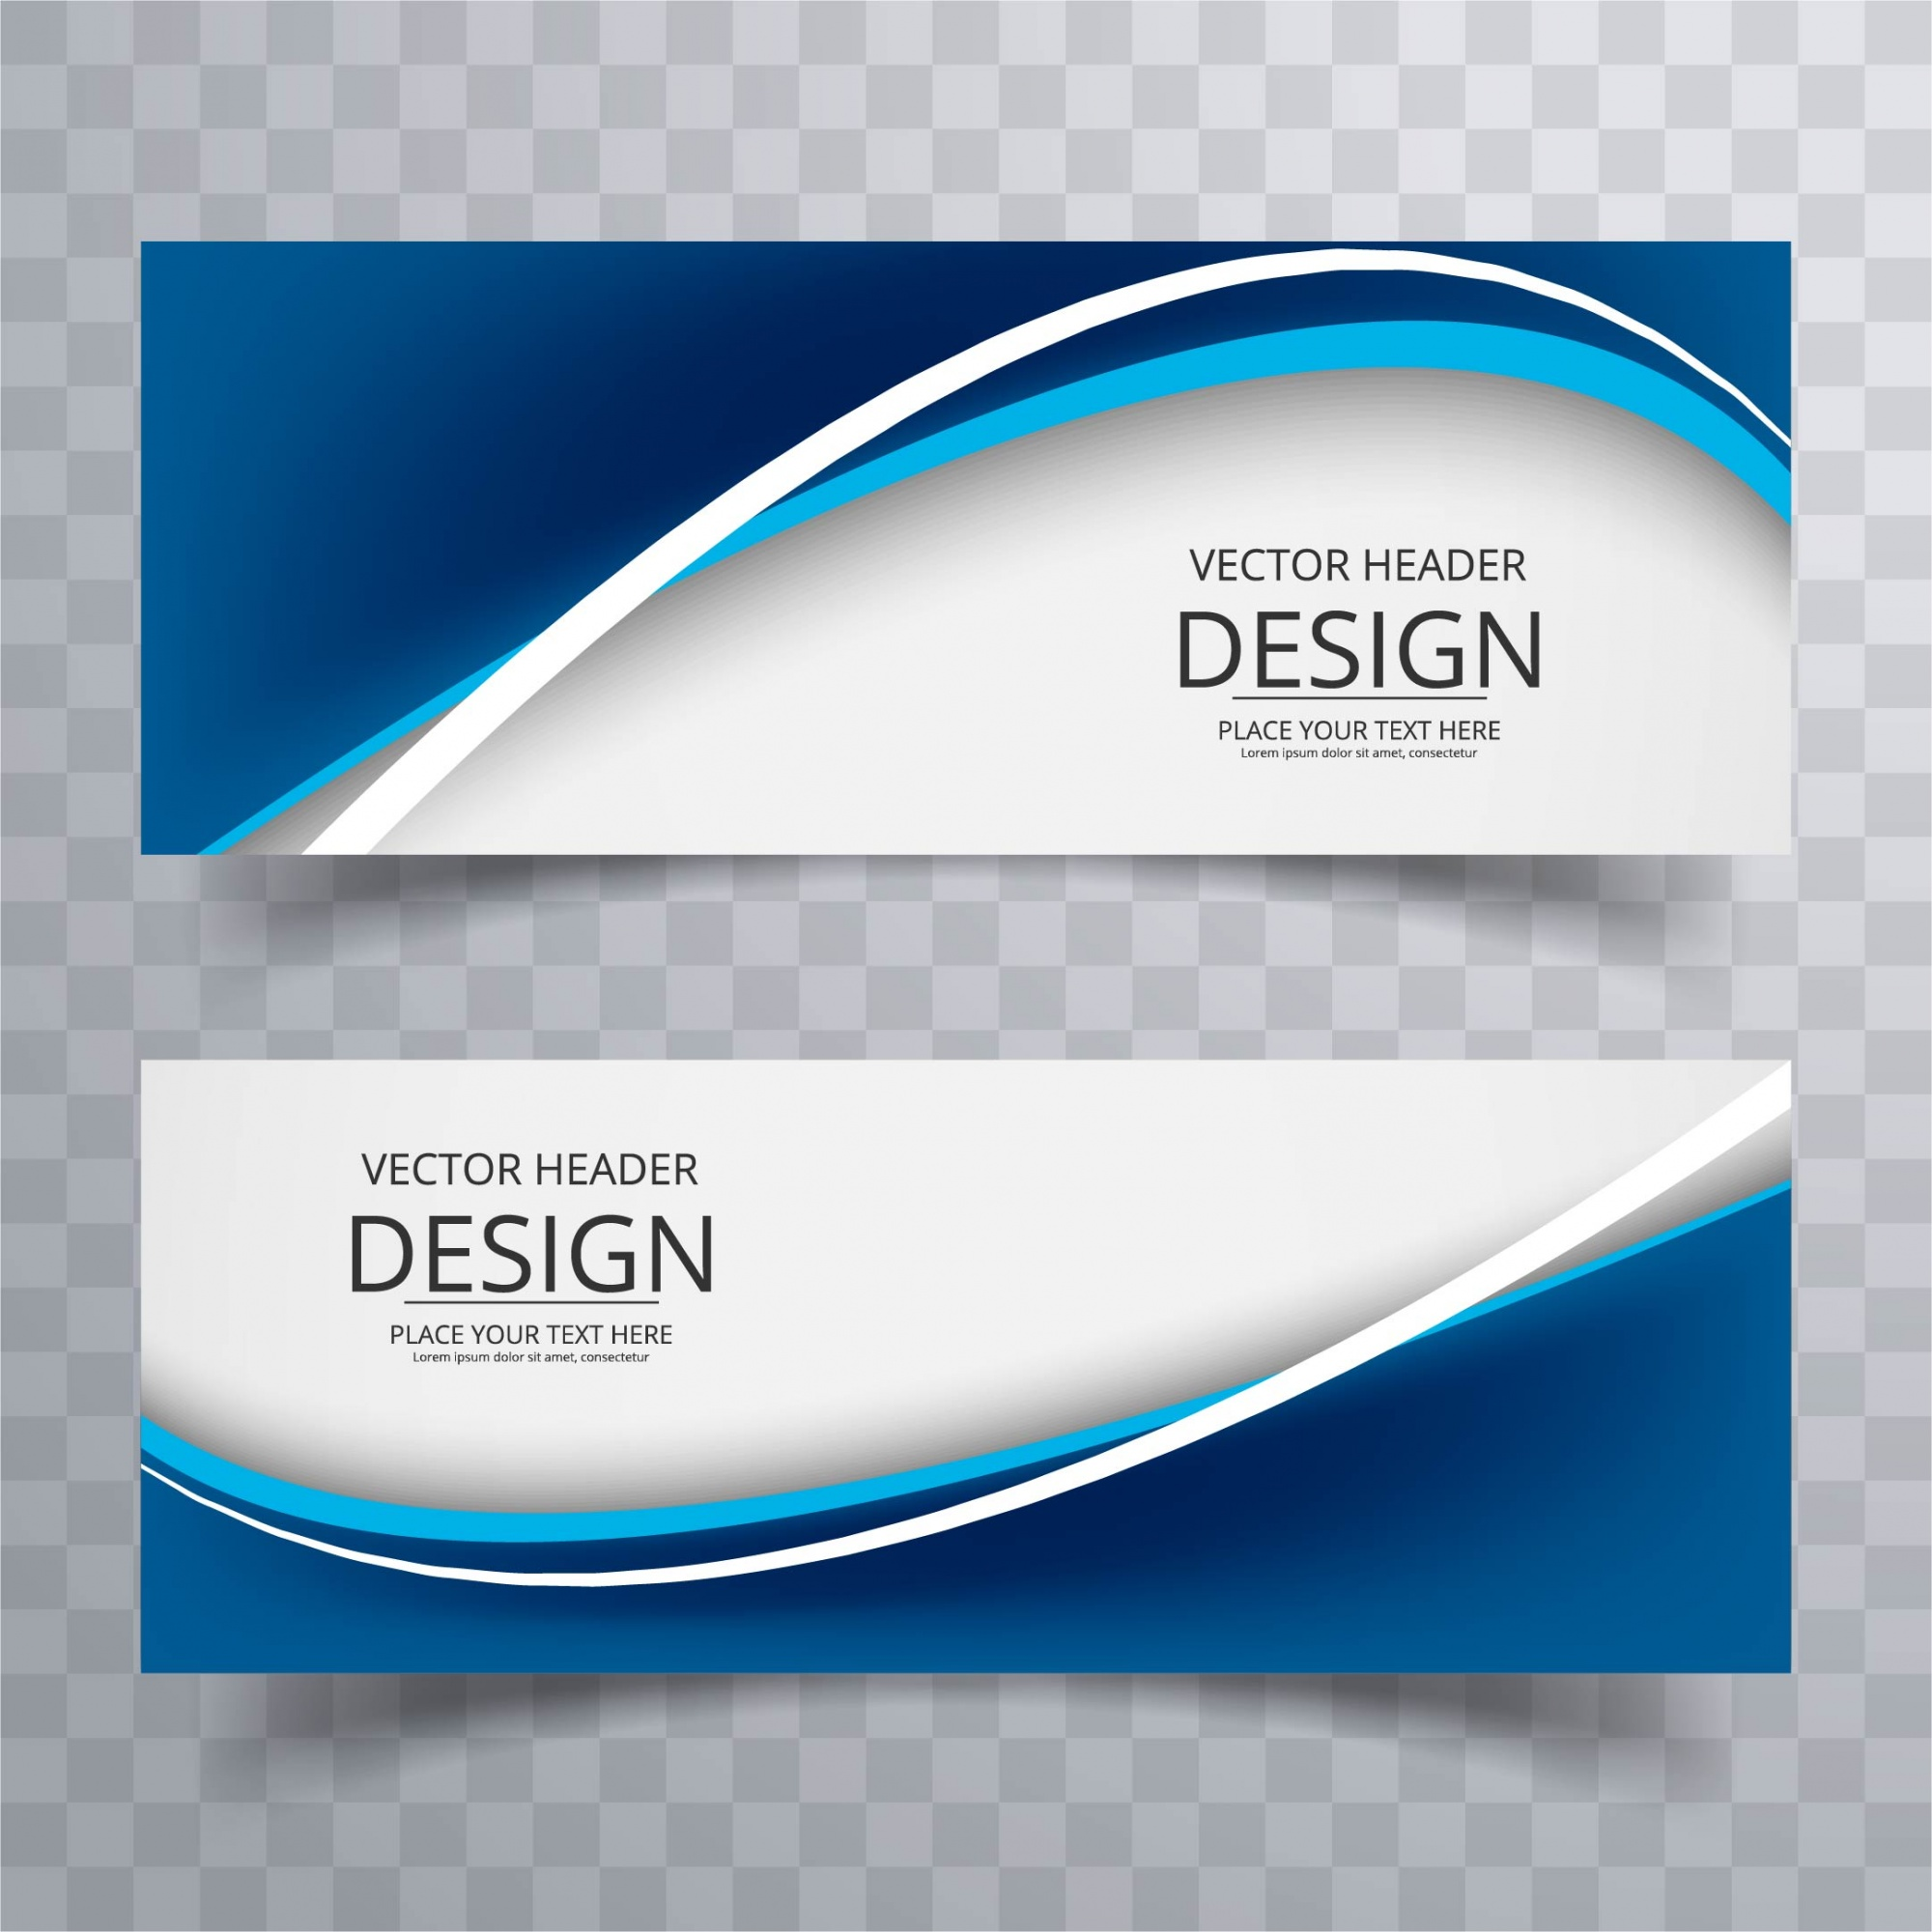 Dark blue wavy banners